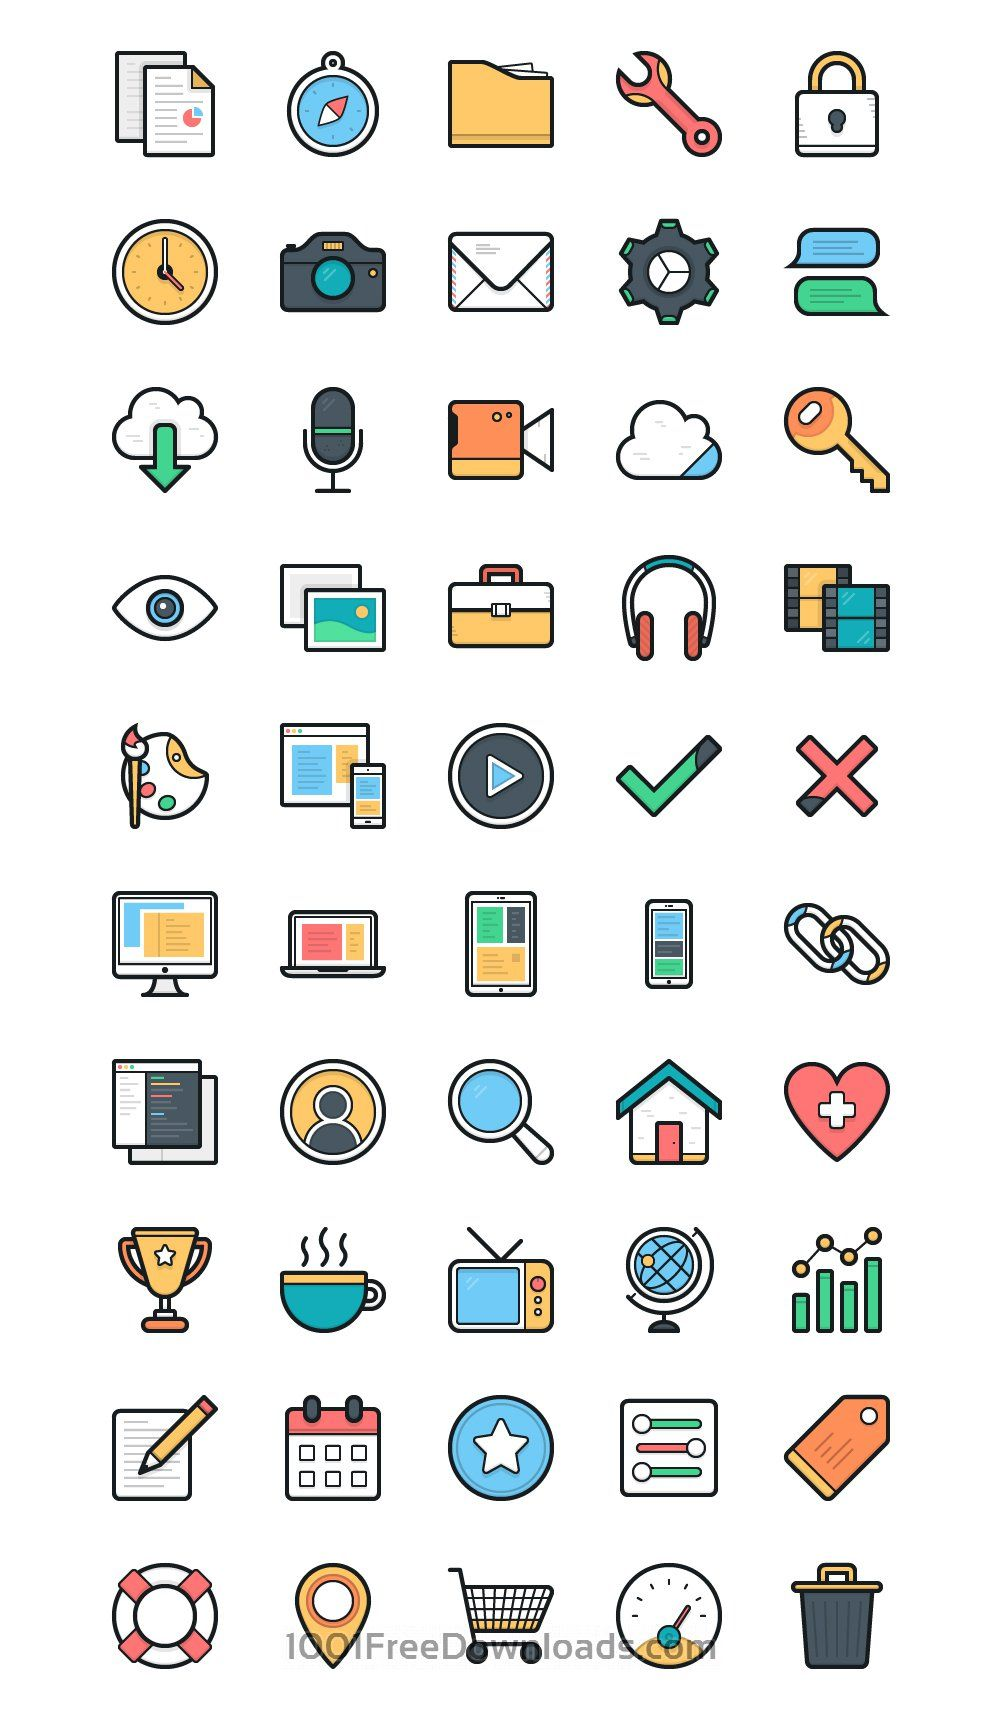 Remarkable List Of Latest Flat Vector Icons For Personal